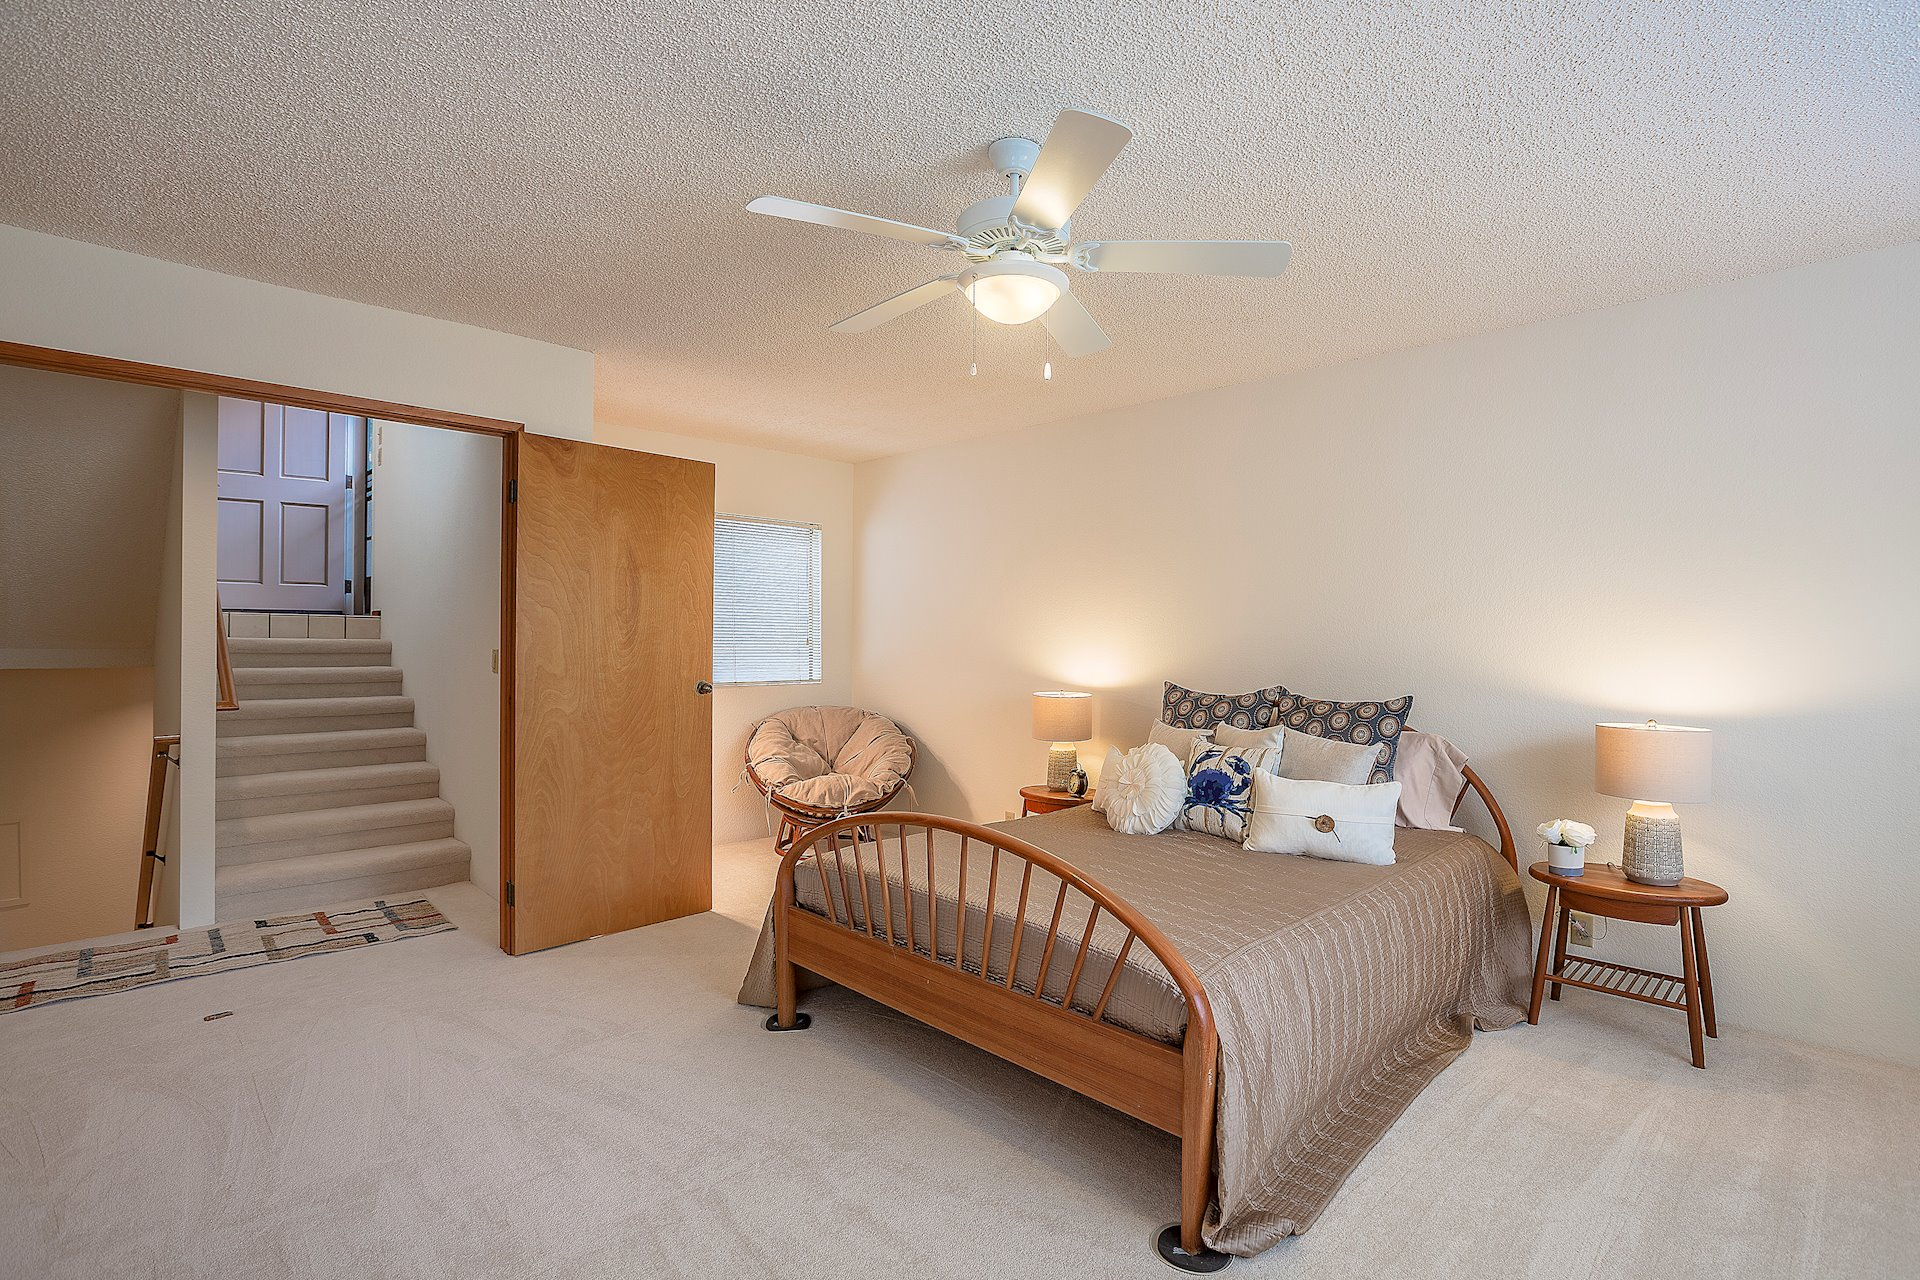 Master suite has its own level which is very spacious.